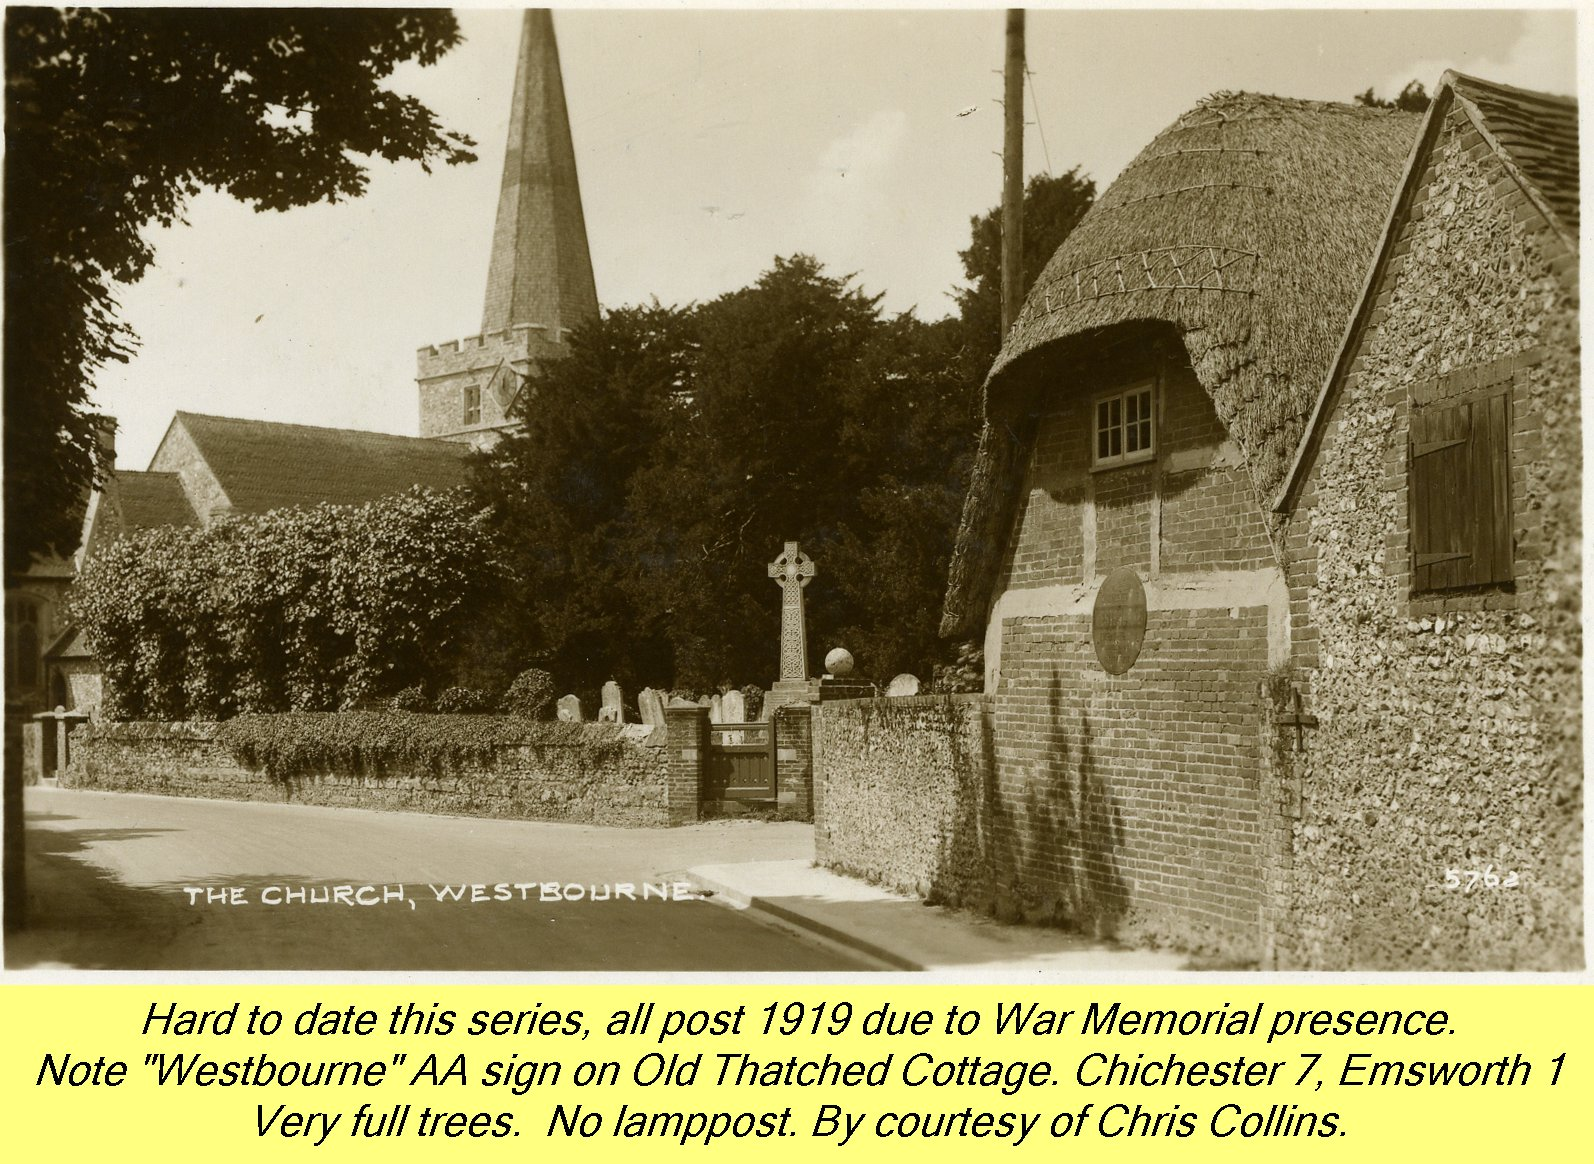 WESTBOURNE HISTORY PHOTO, CHURCH, St. JOHN, YEW, INTERIOR, SCREEN, MEMORIAL